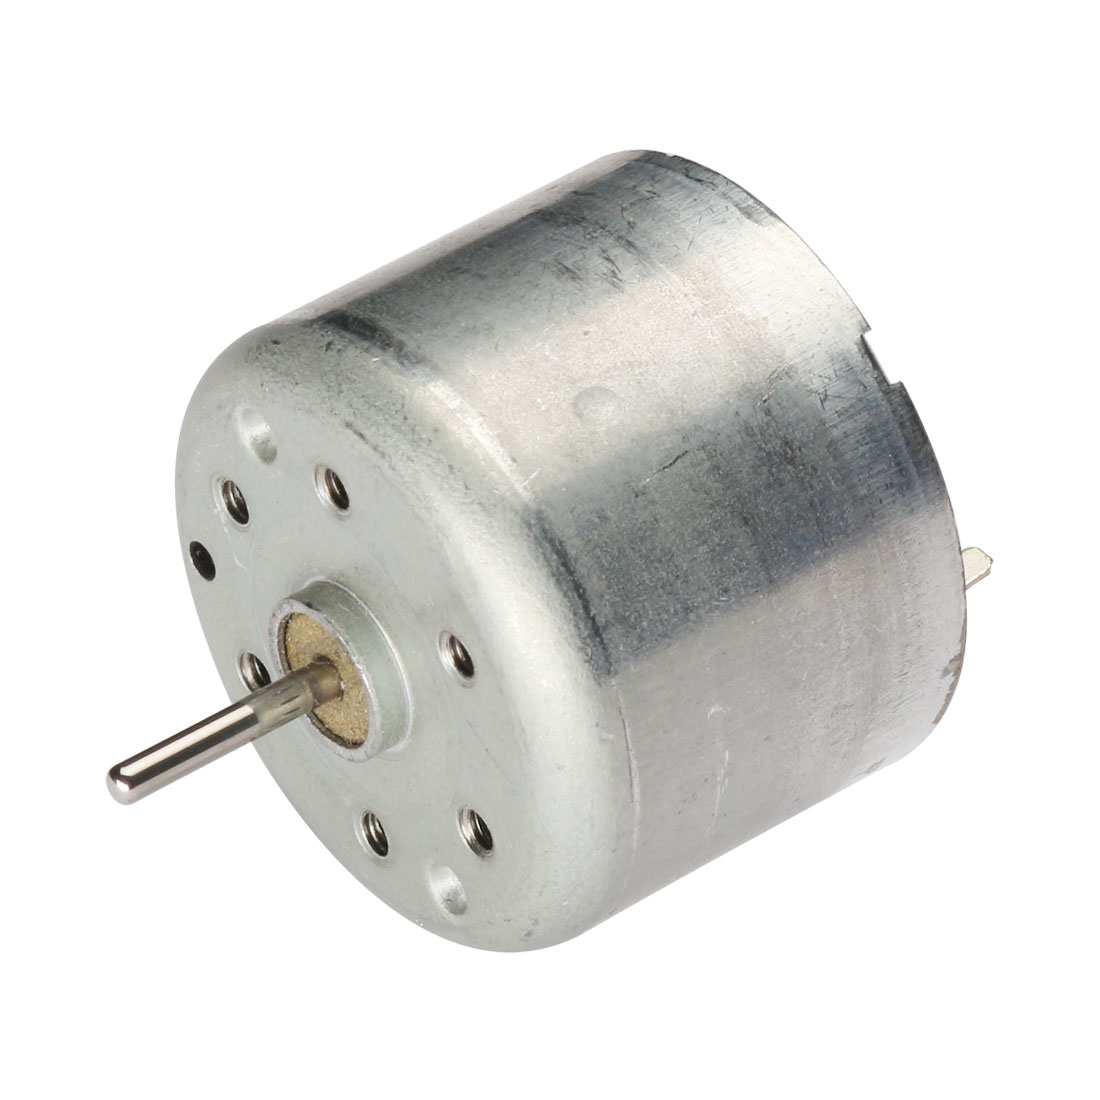 6V DC 9300RPM High-power Torque Magnetic Mini Electric Motor f Electrical Tools